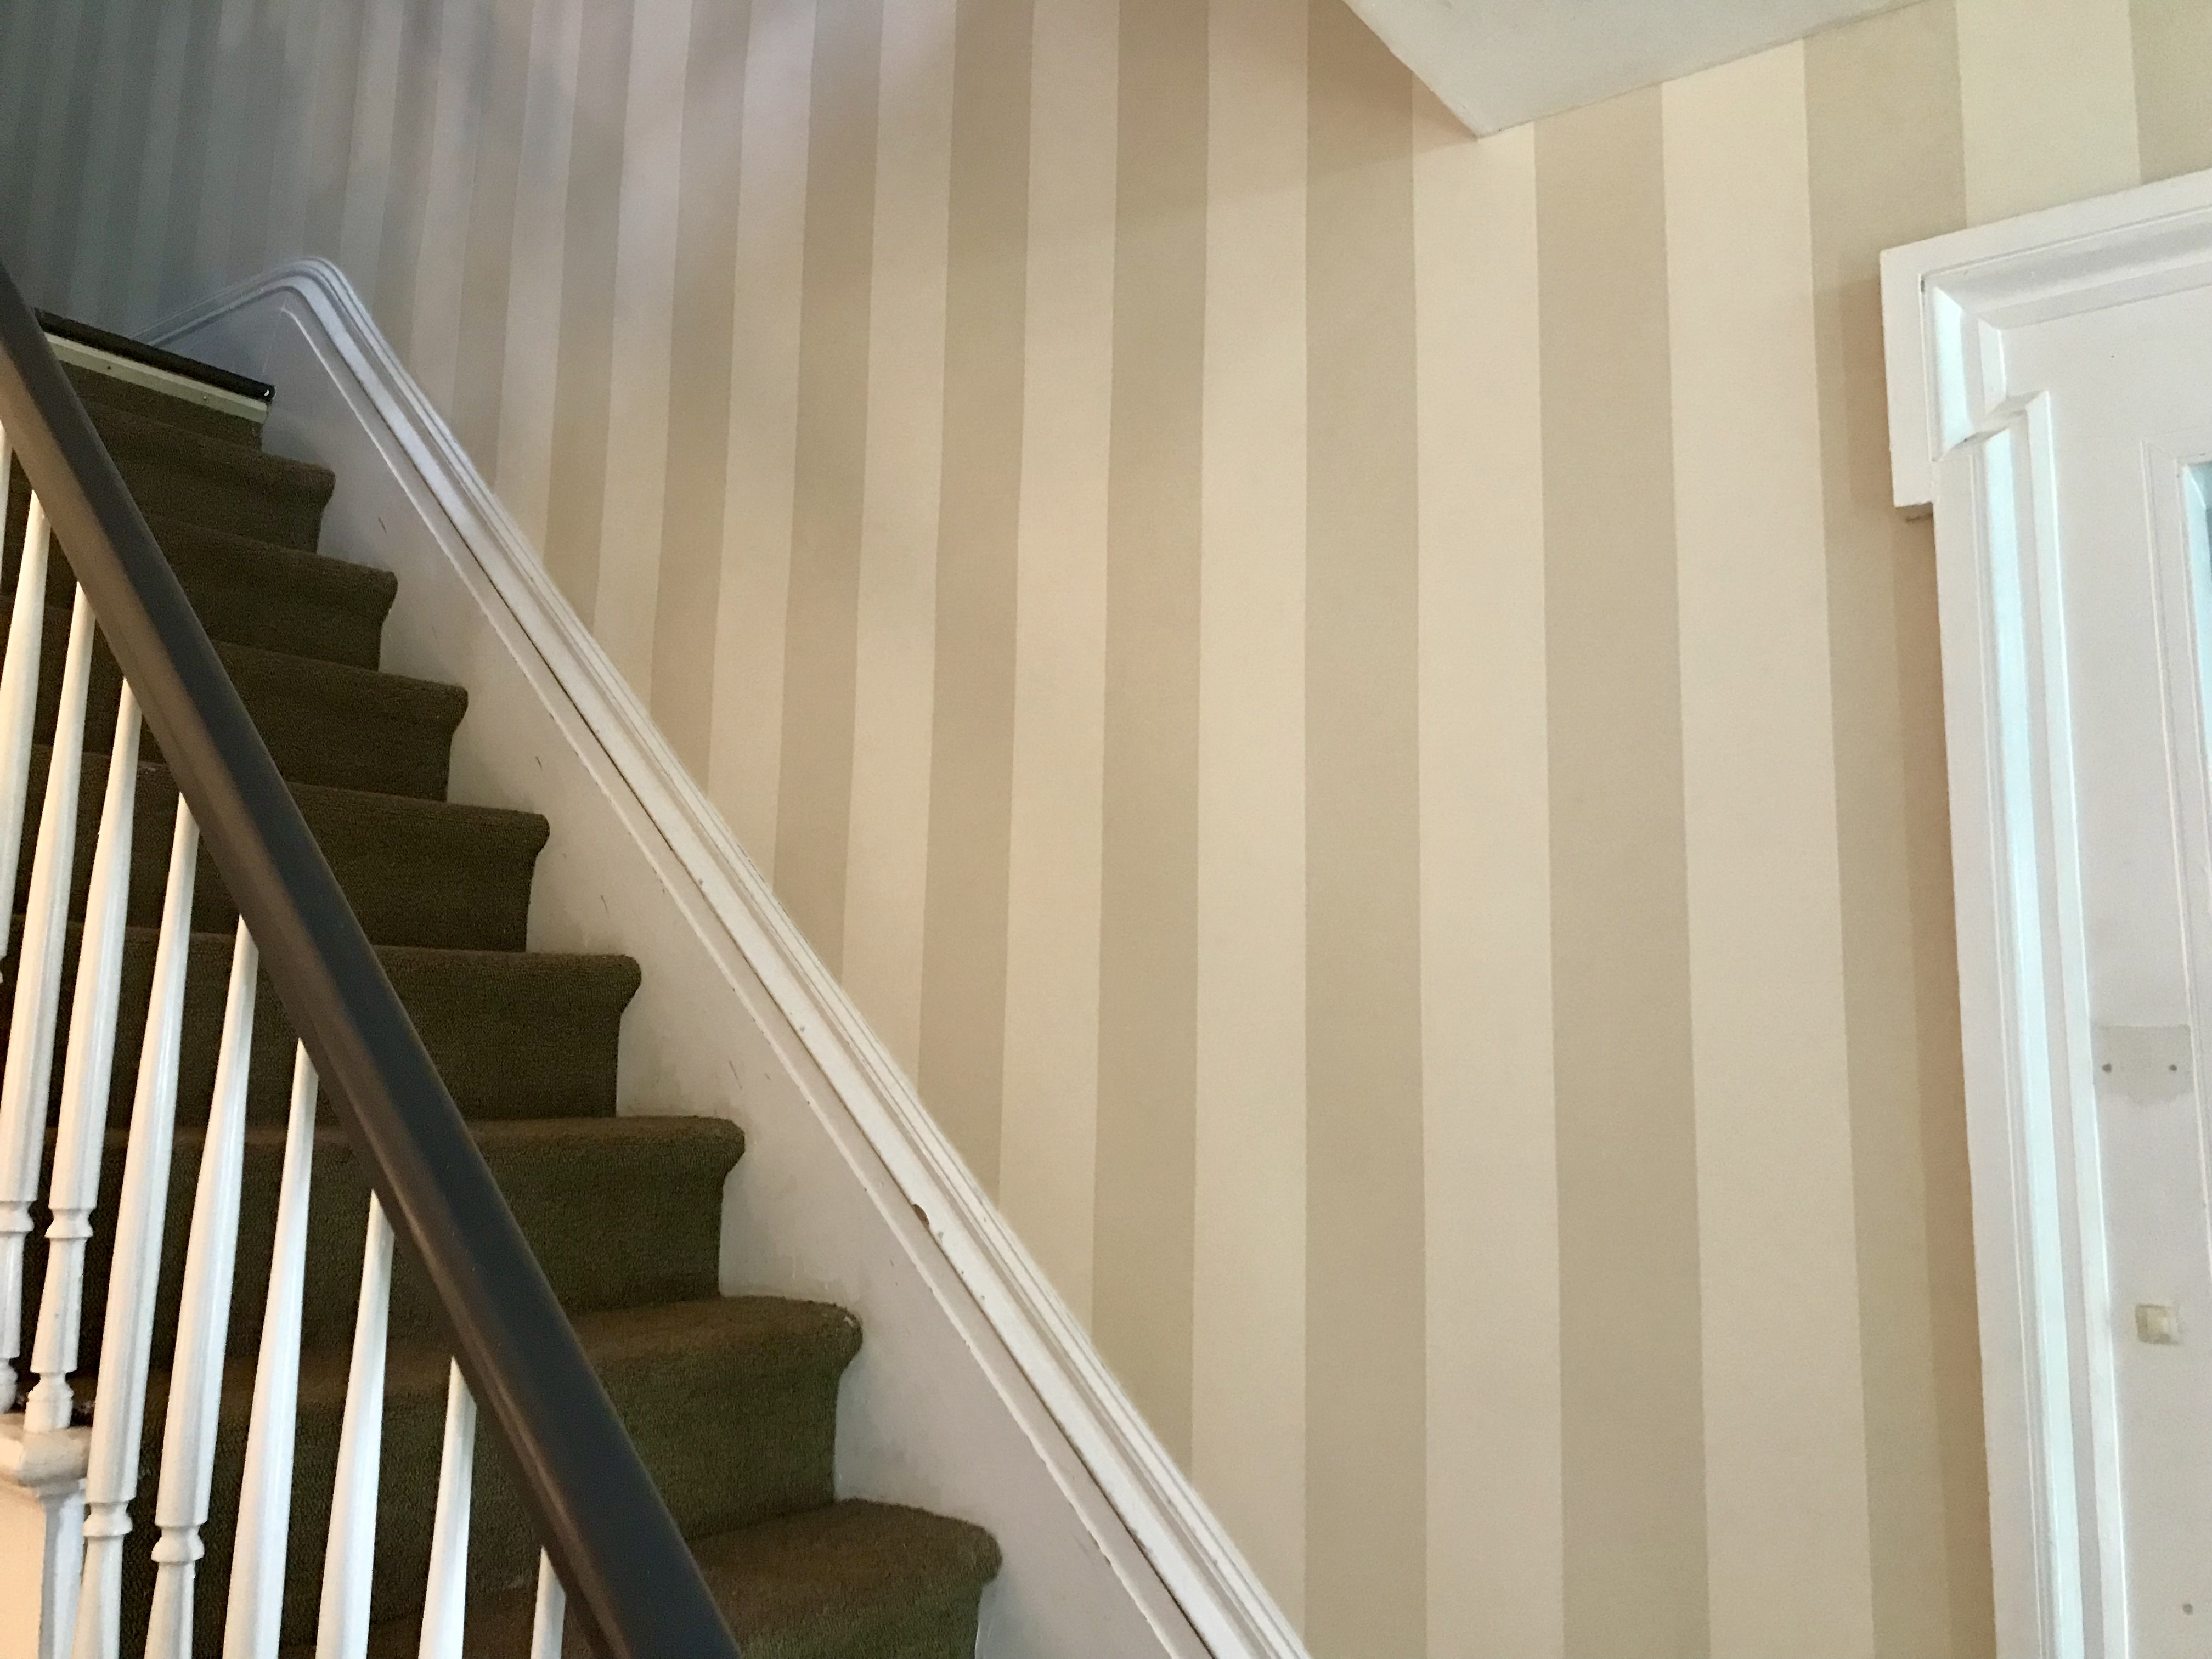 The Foyer - striped wallpaper going up the stairs